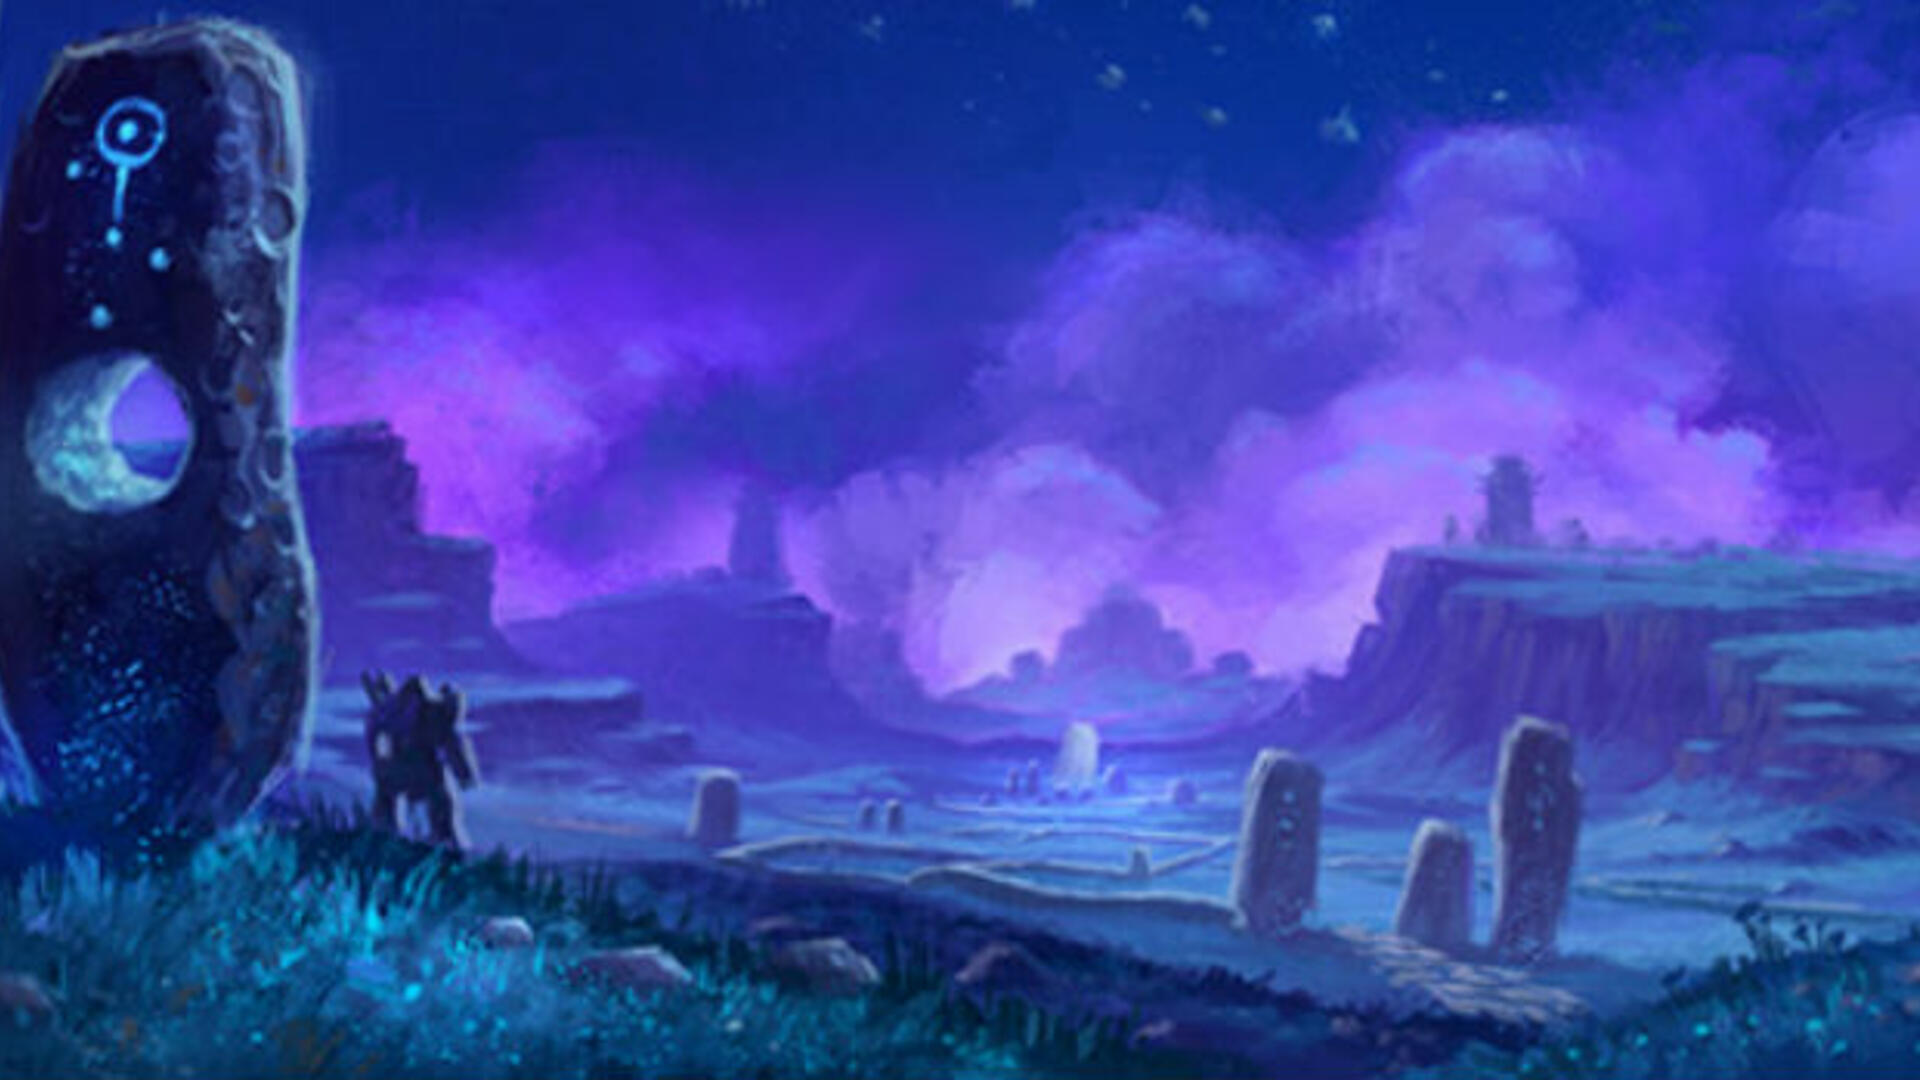 The 15 Best Games Since 2000, Number 3: World of Warcraft